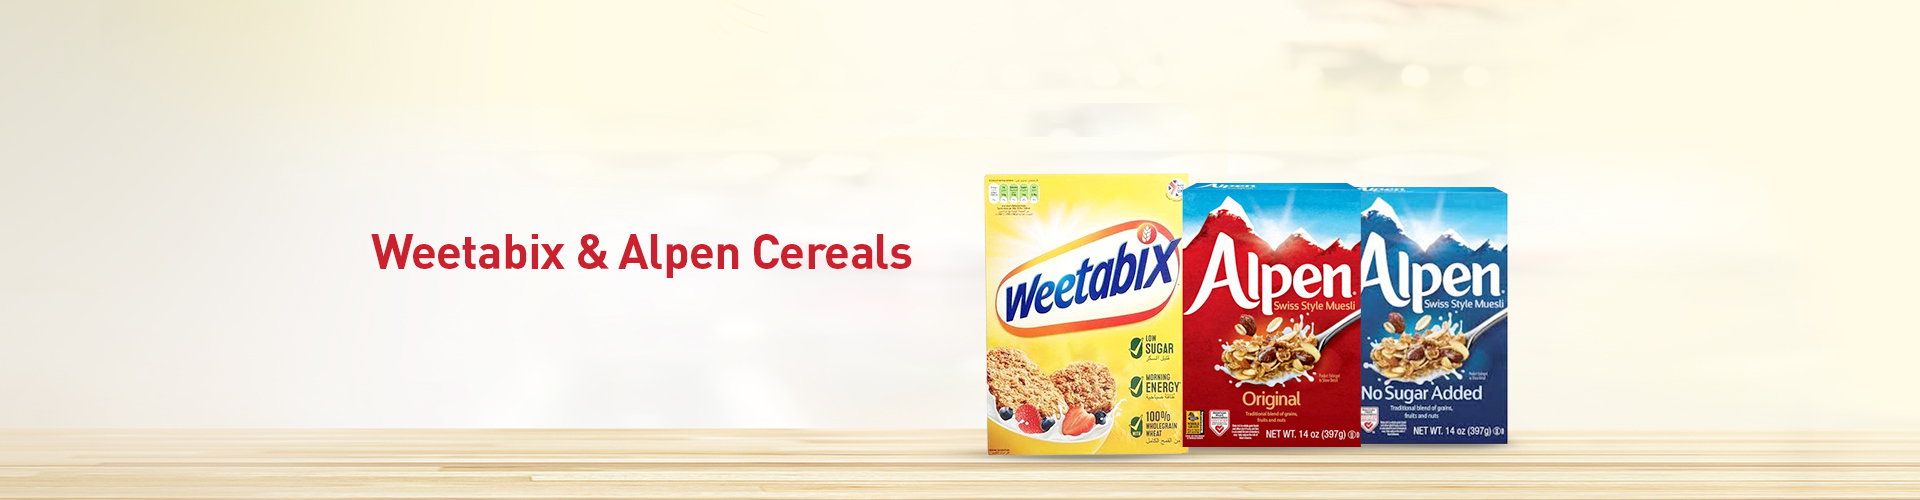 Weetabix and Alpen Cereals